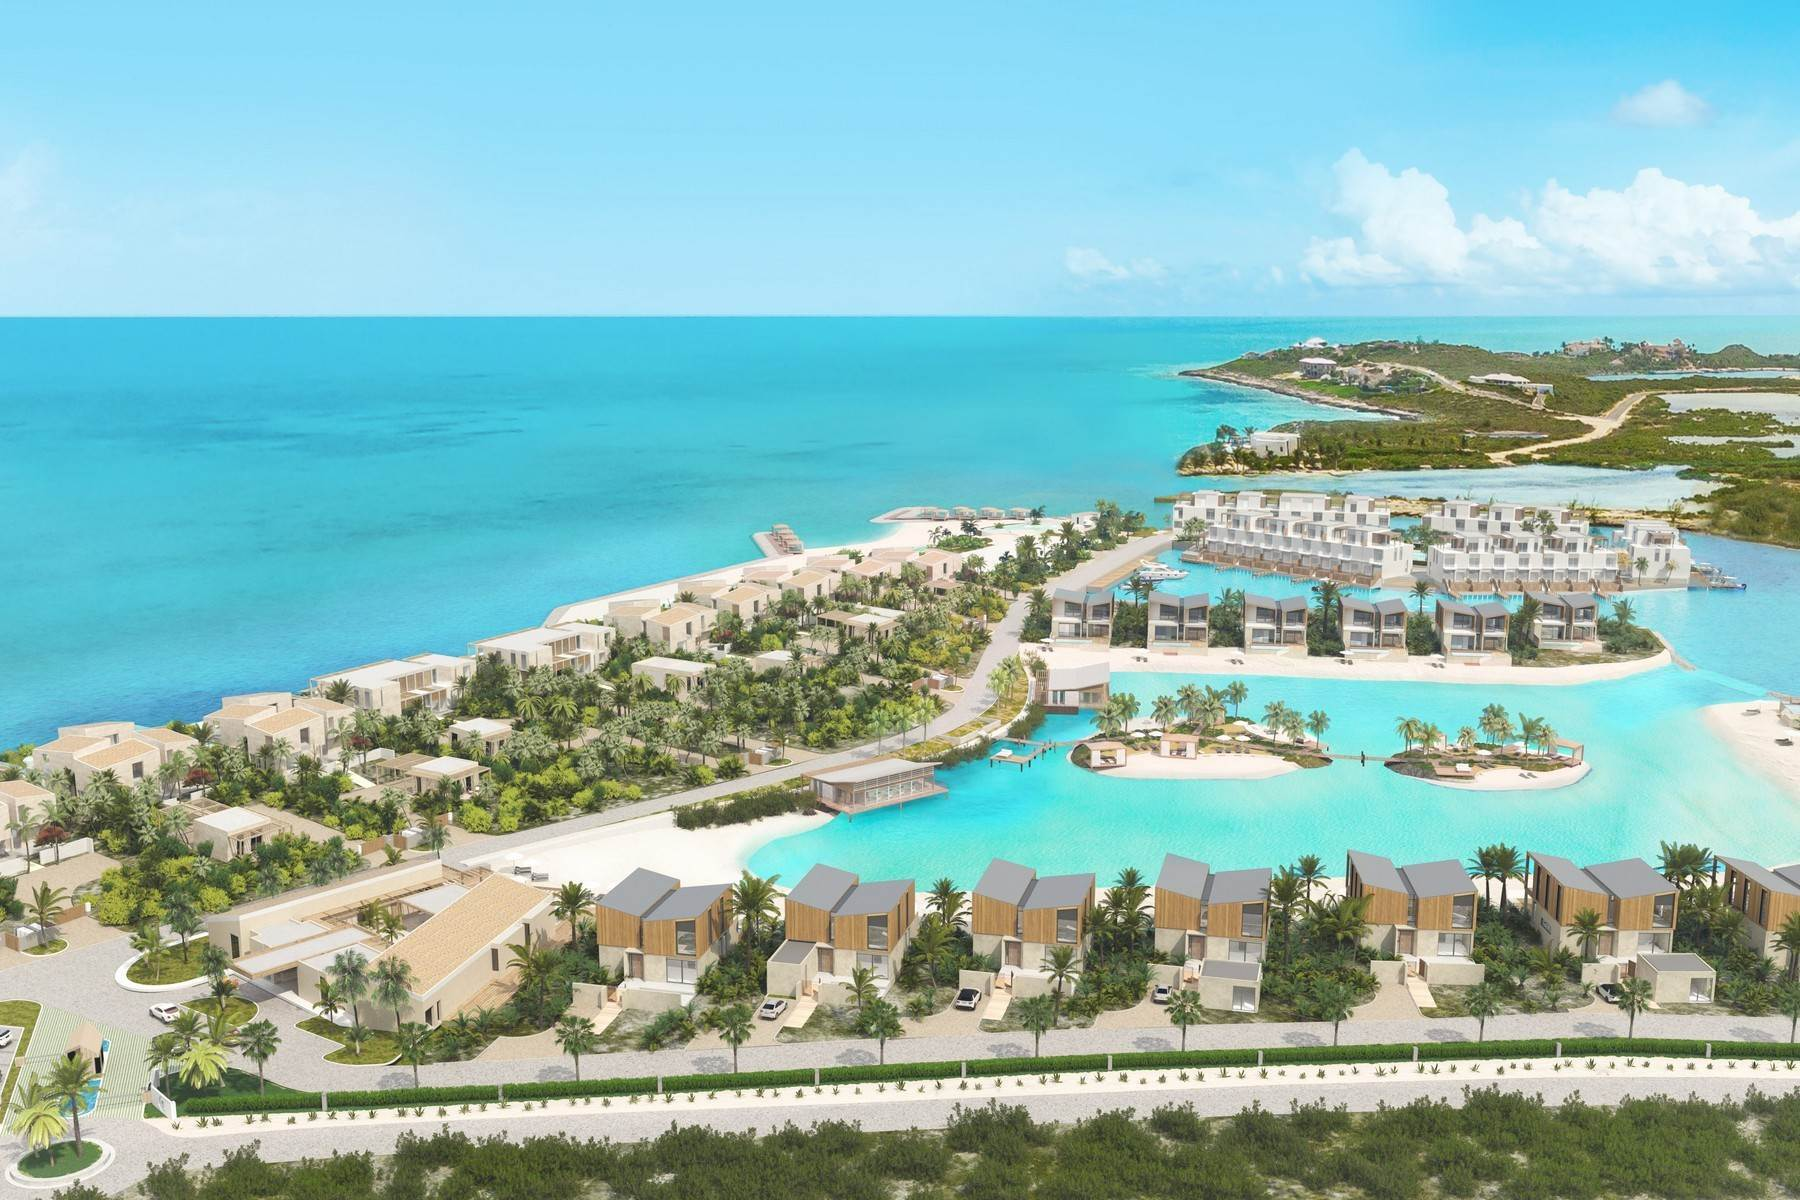 9. Single Family Homes for Sale at SOUTH BANK - THE OCEAN ESTATE I - BANKS VILLA 5 South Bank, Long Bay, Providenciales Turks And Caicos Islands